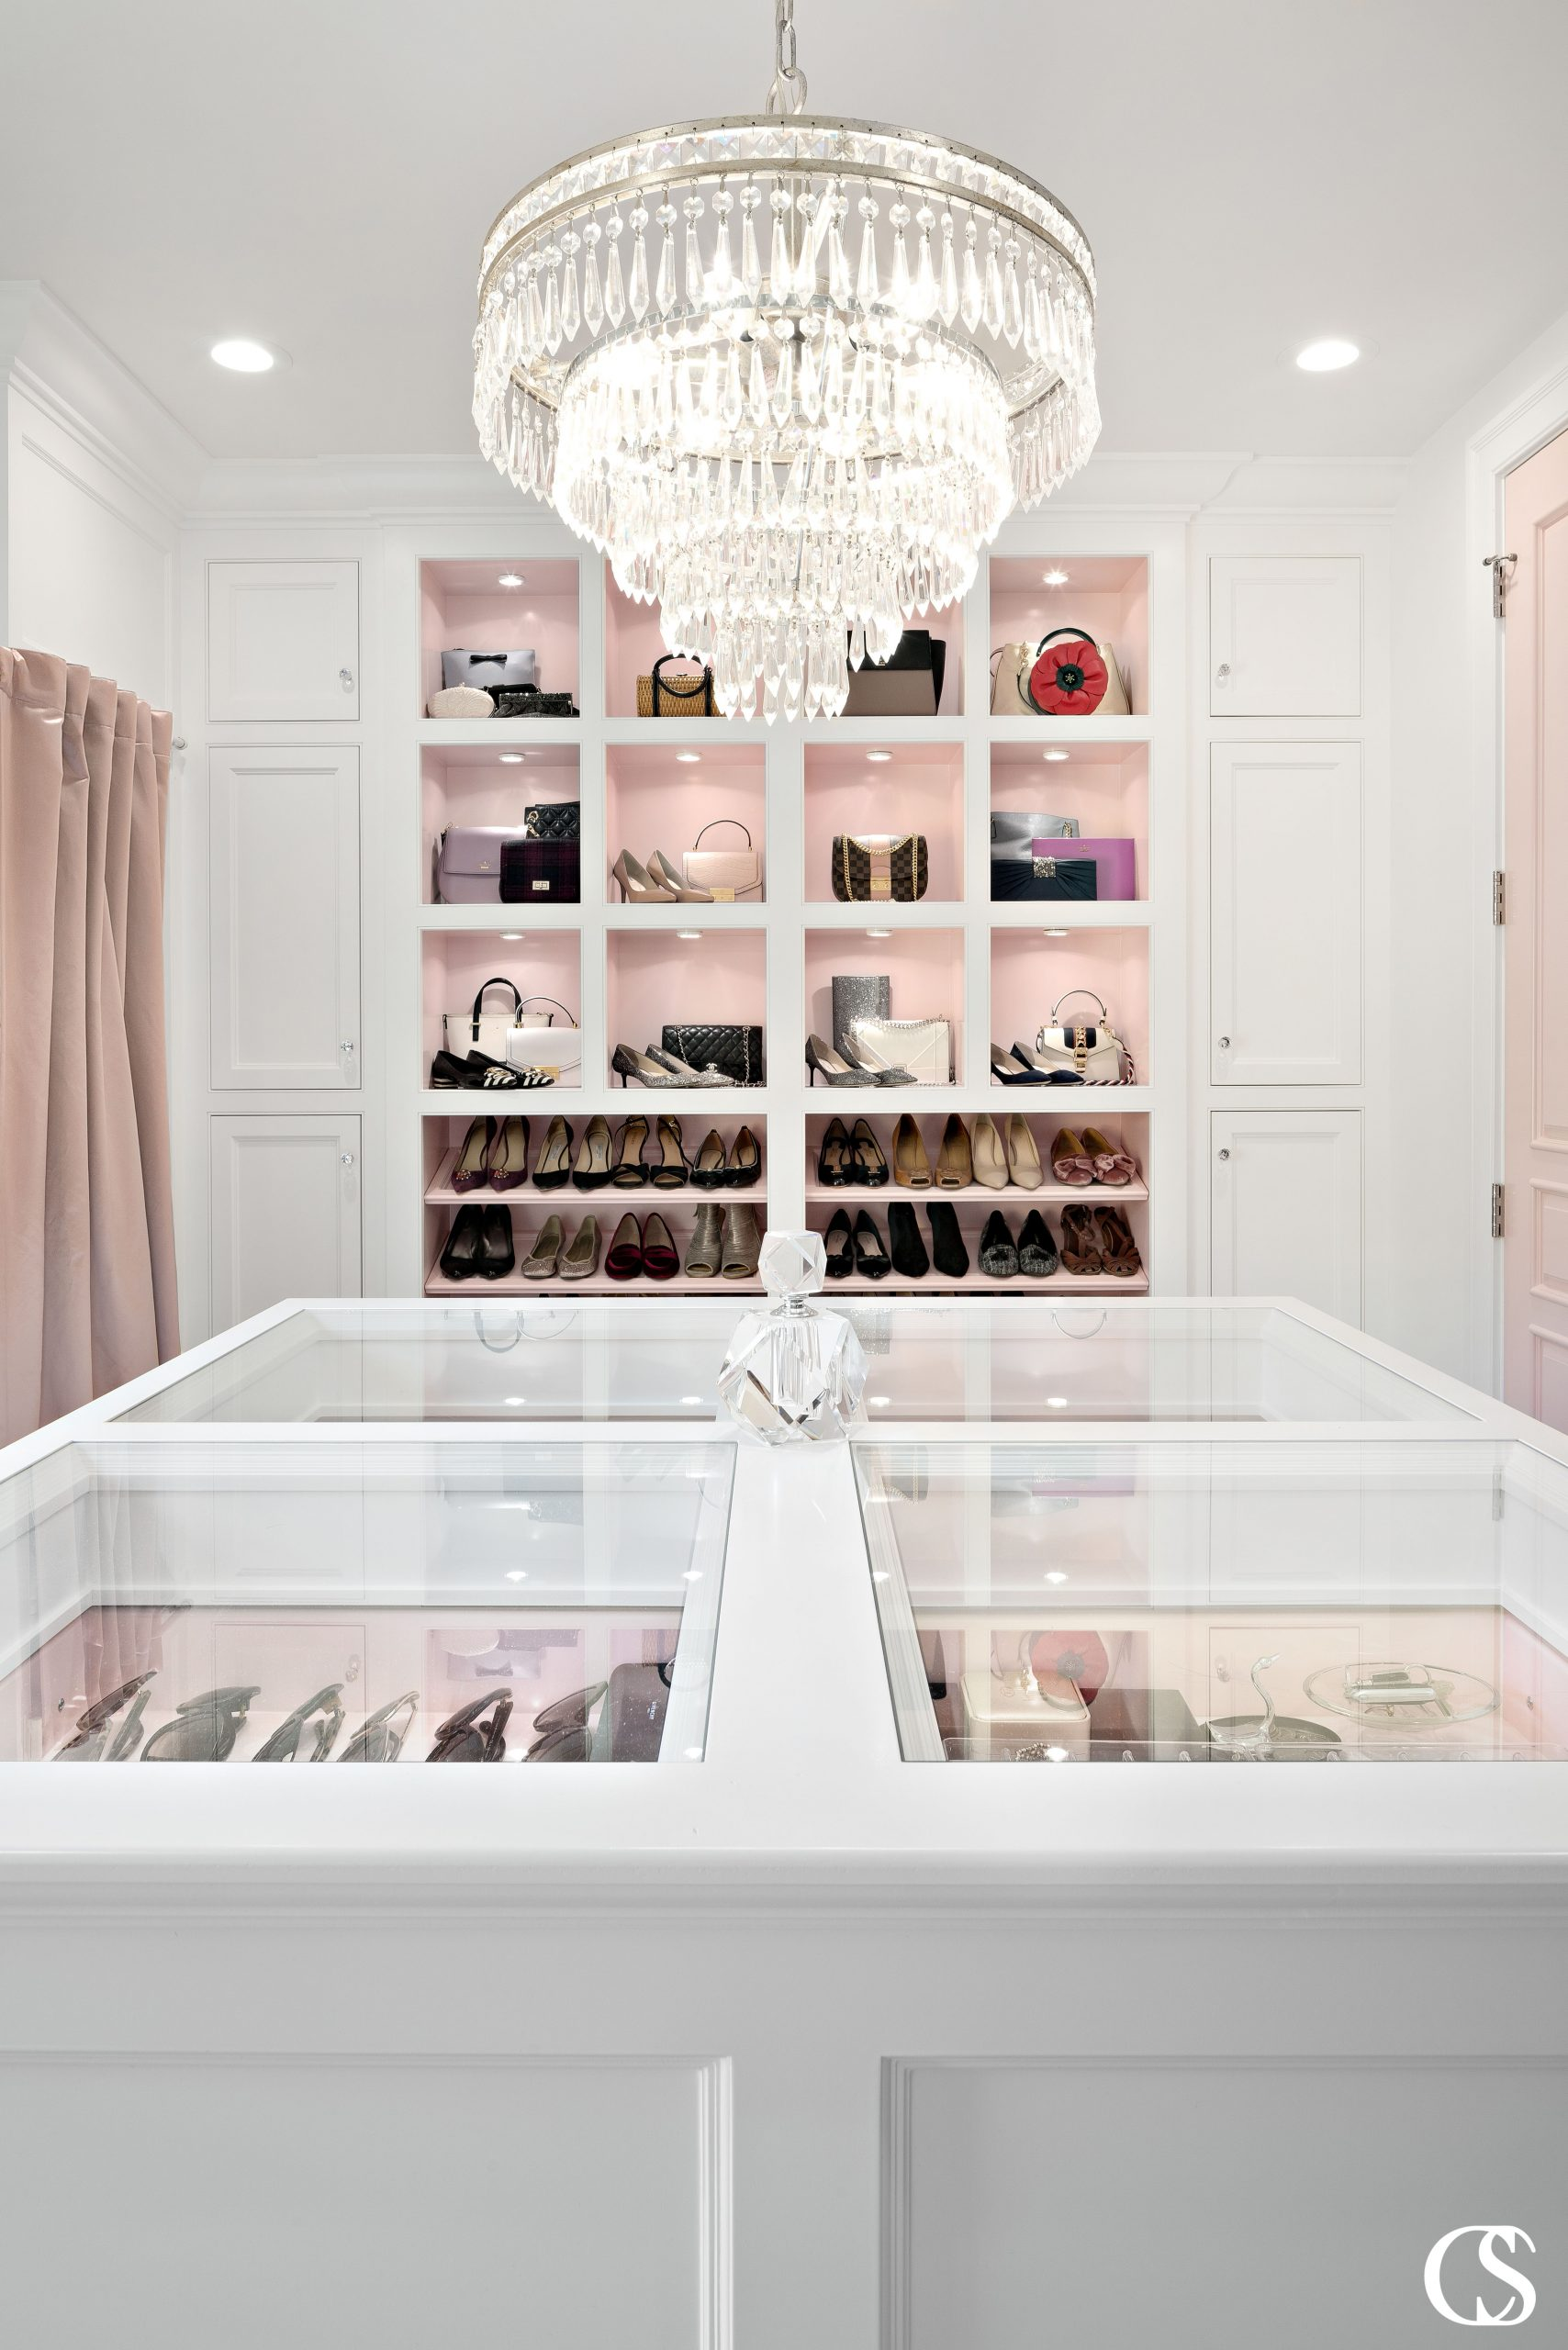 Custom closet cabinets give you the chance to display all your shoes, purses, and other accessories in a perfectly organized and beautiful way.